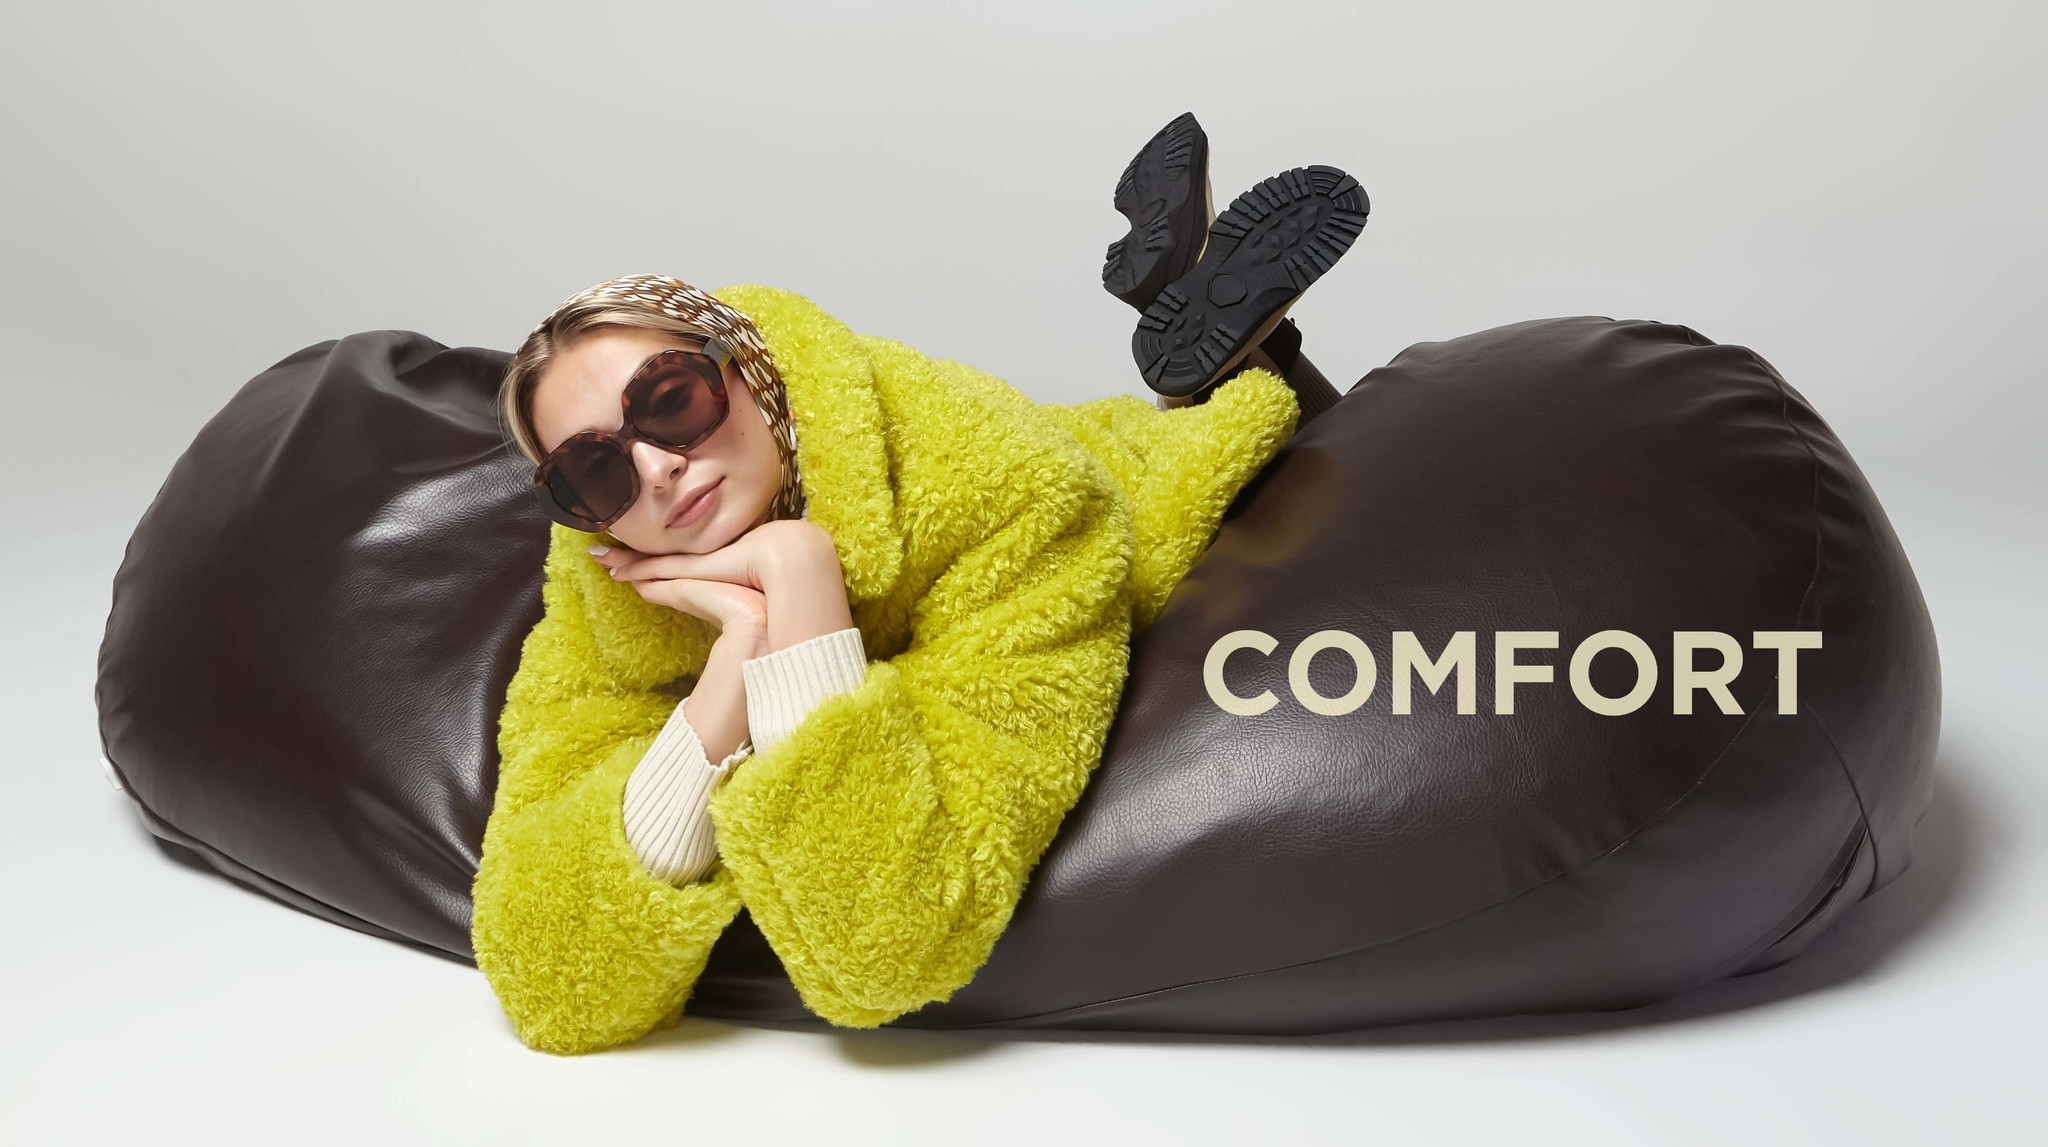 about comfort